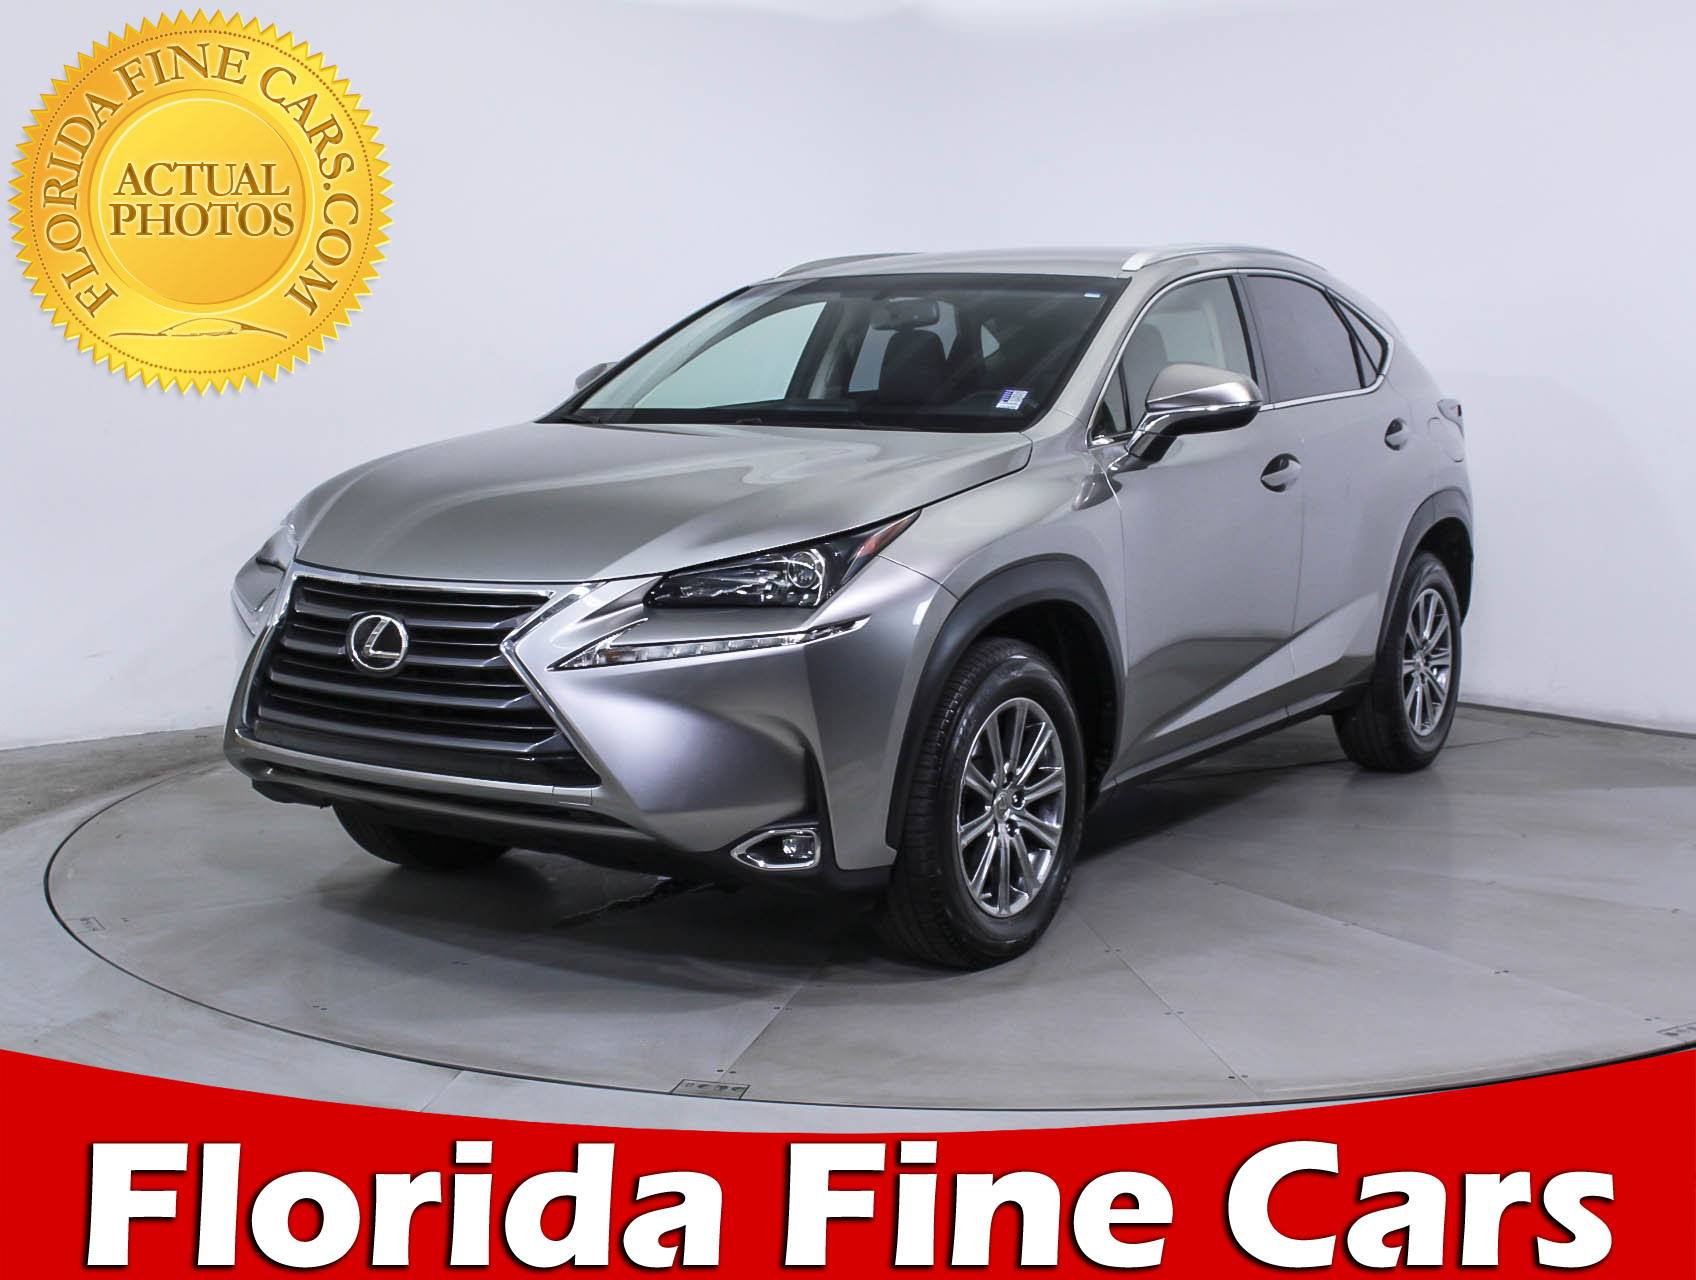 Used 2015 LEXUS NX 200T SUV for sale in HOLLYWOOD FL